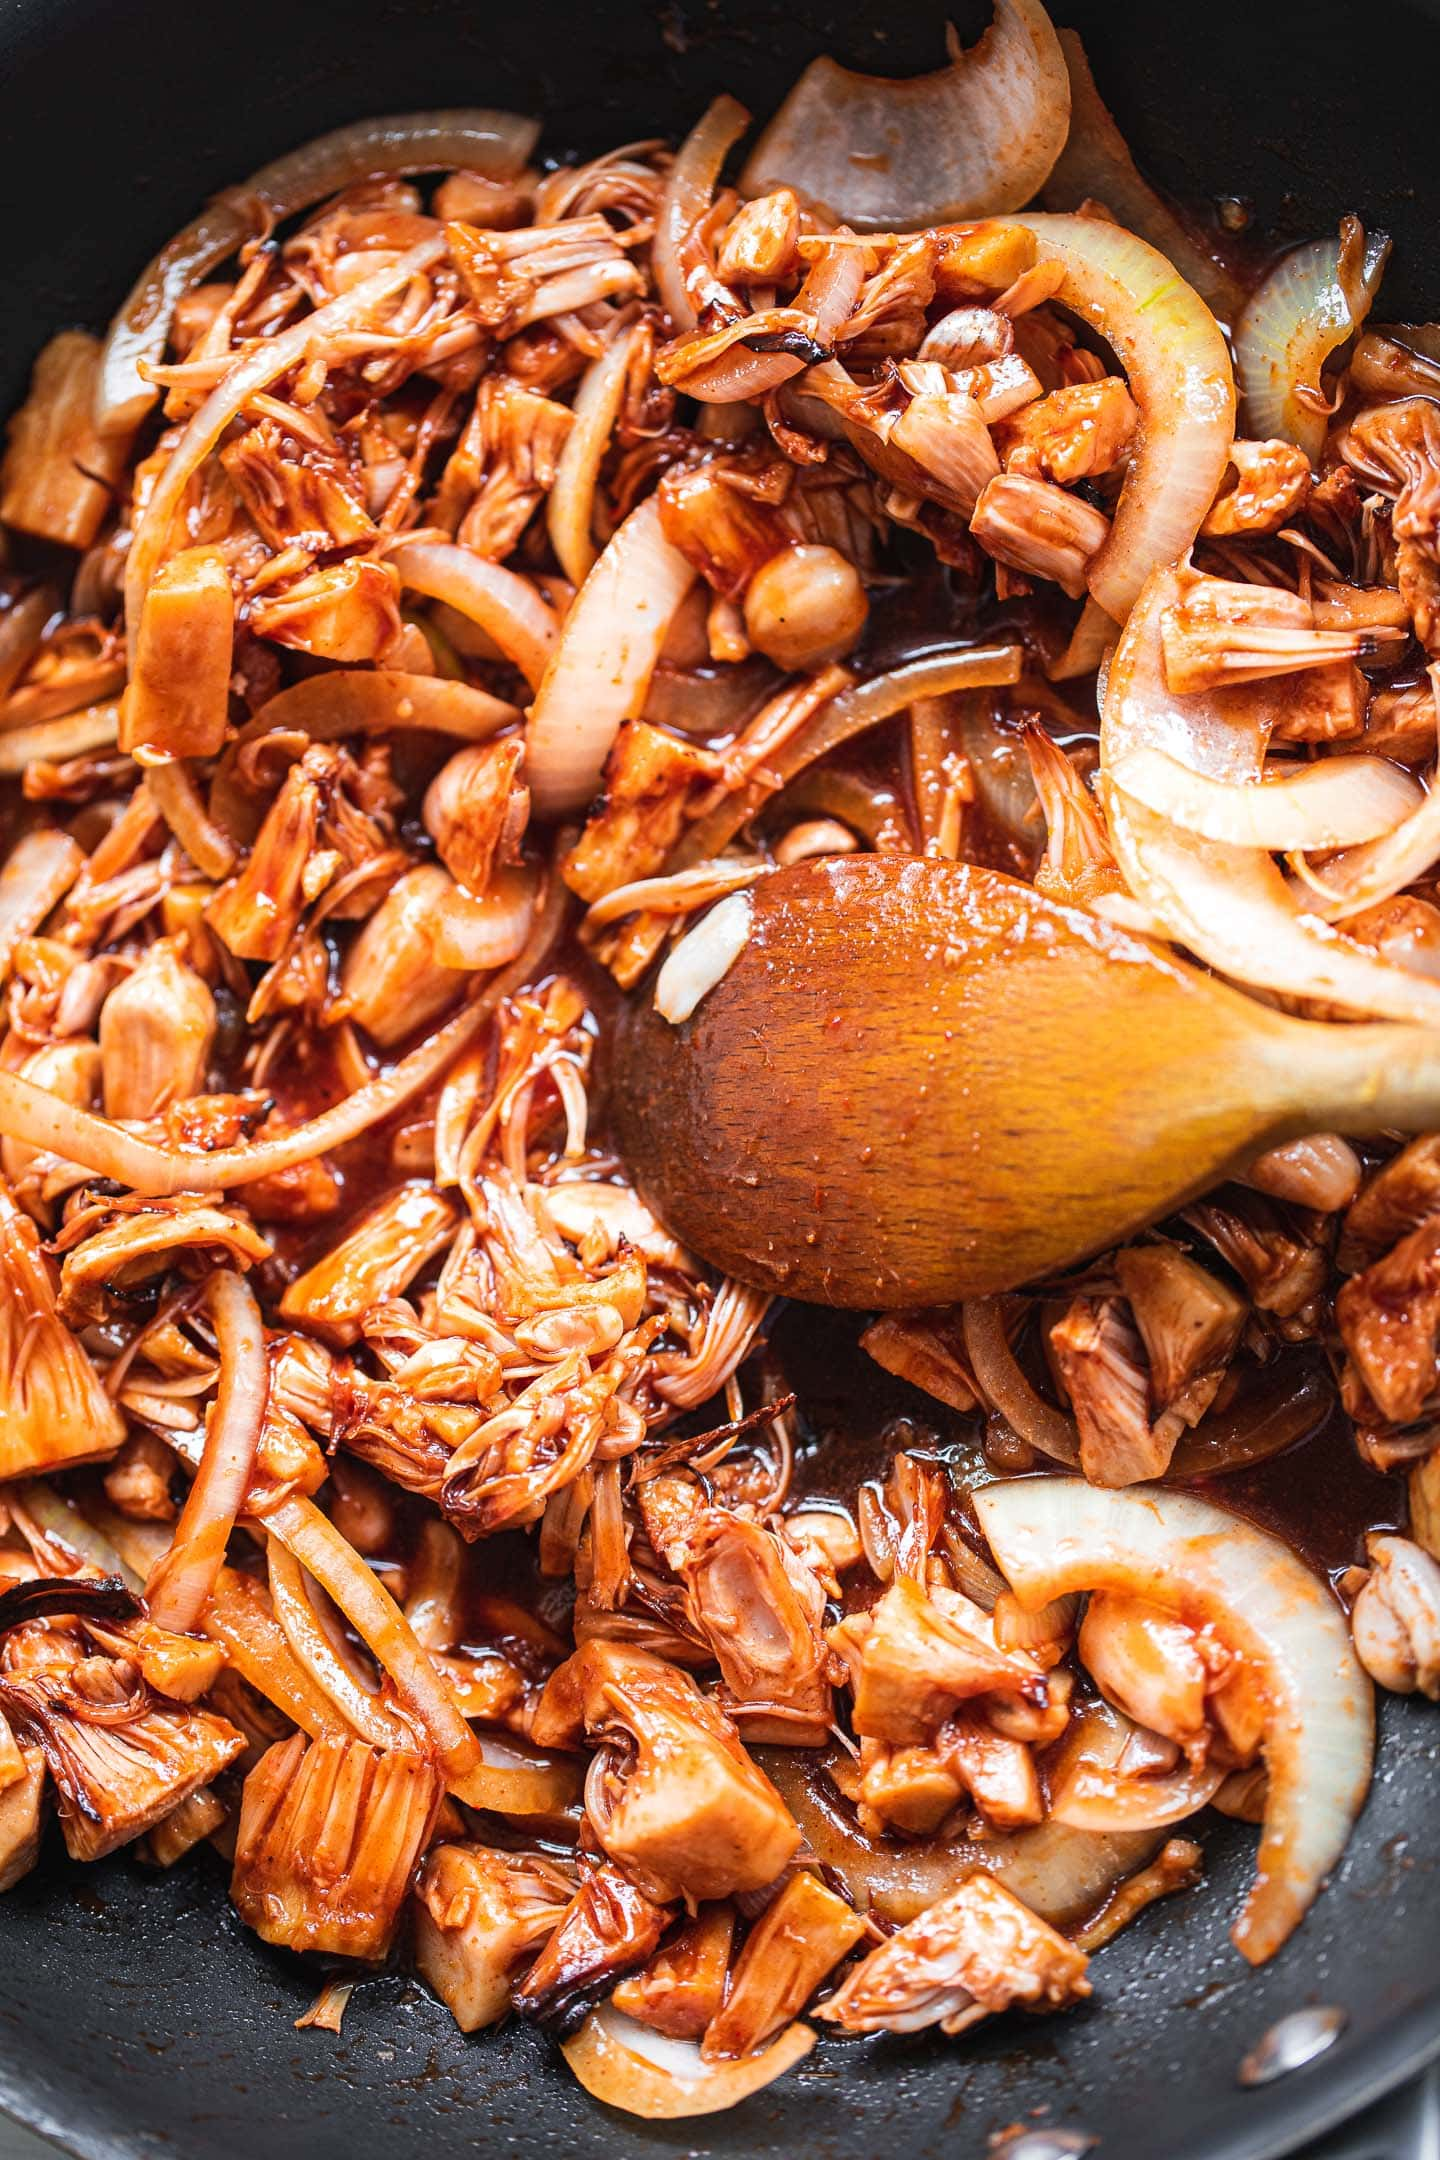 Jackfruit in a pan with a BBQ sauce